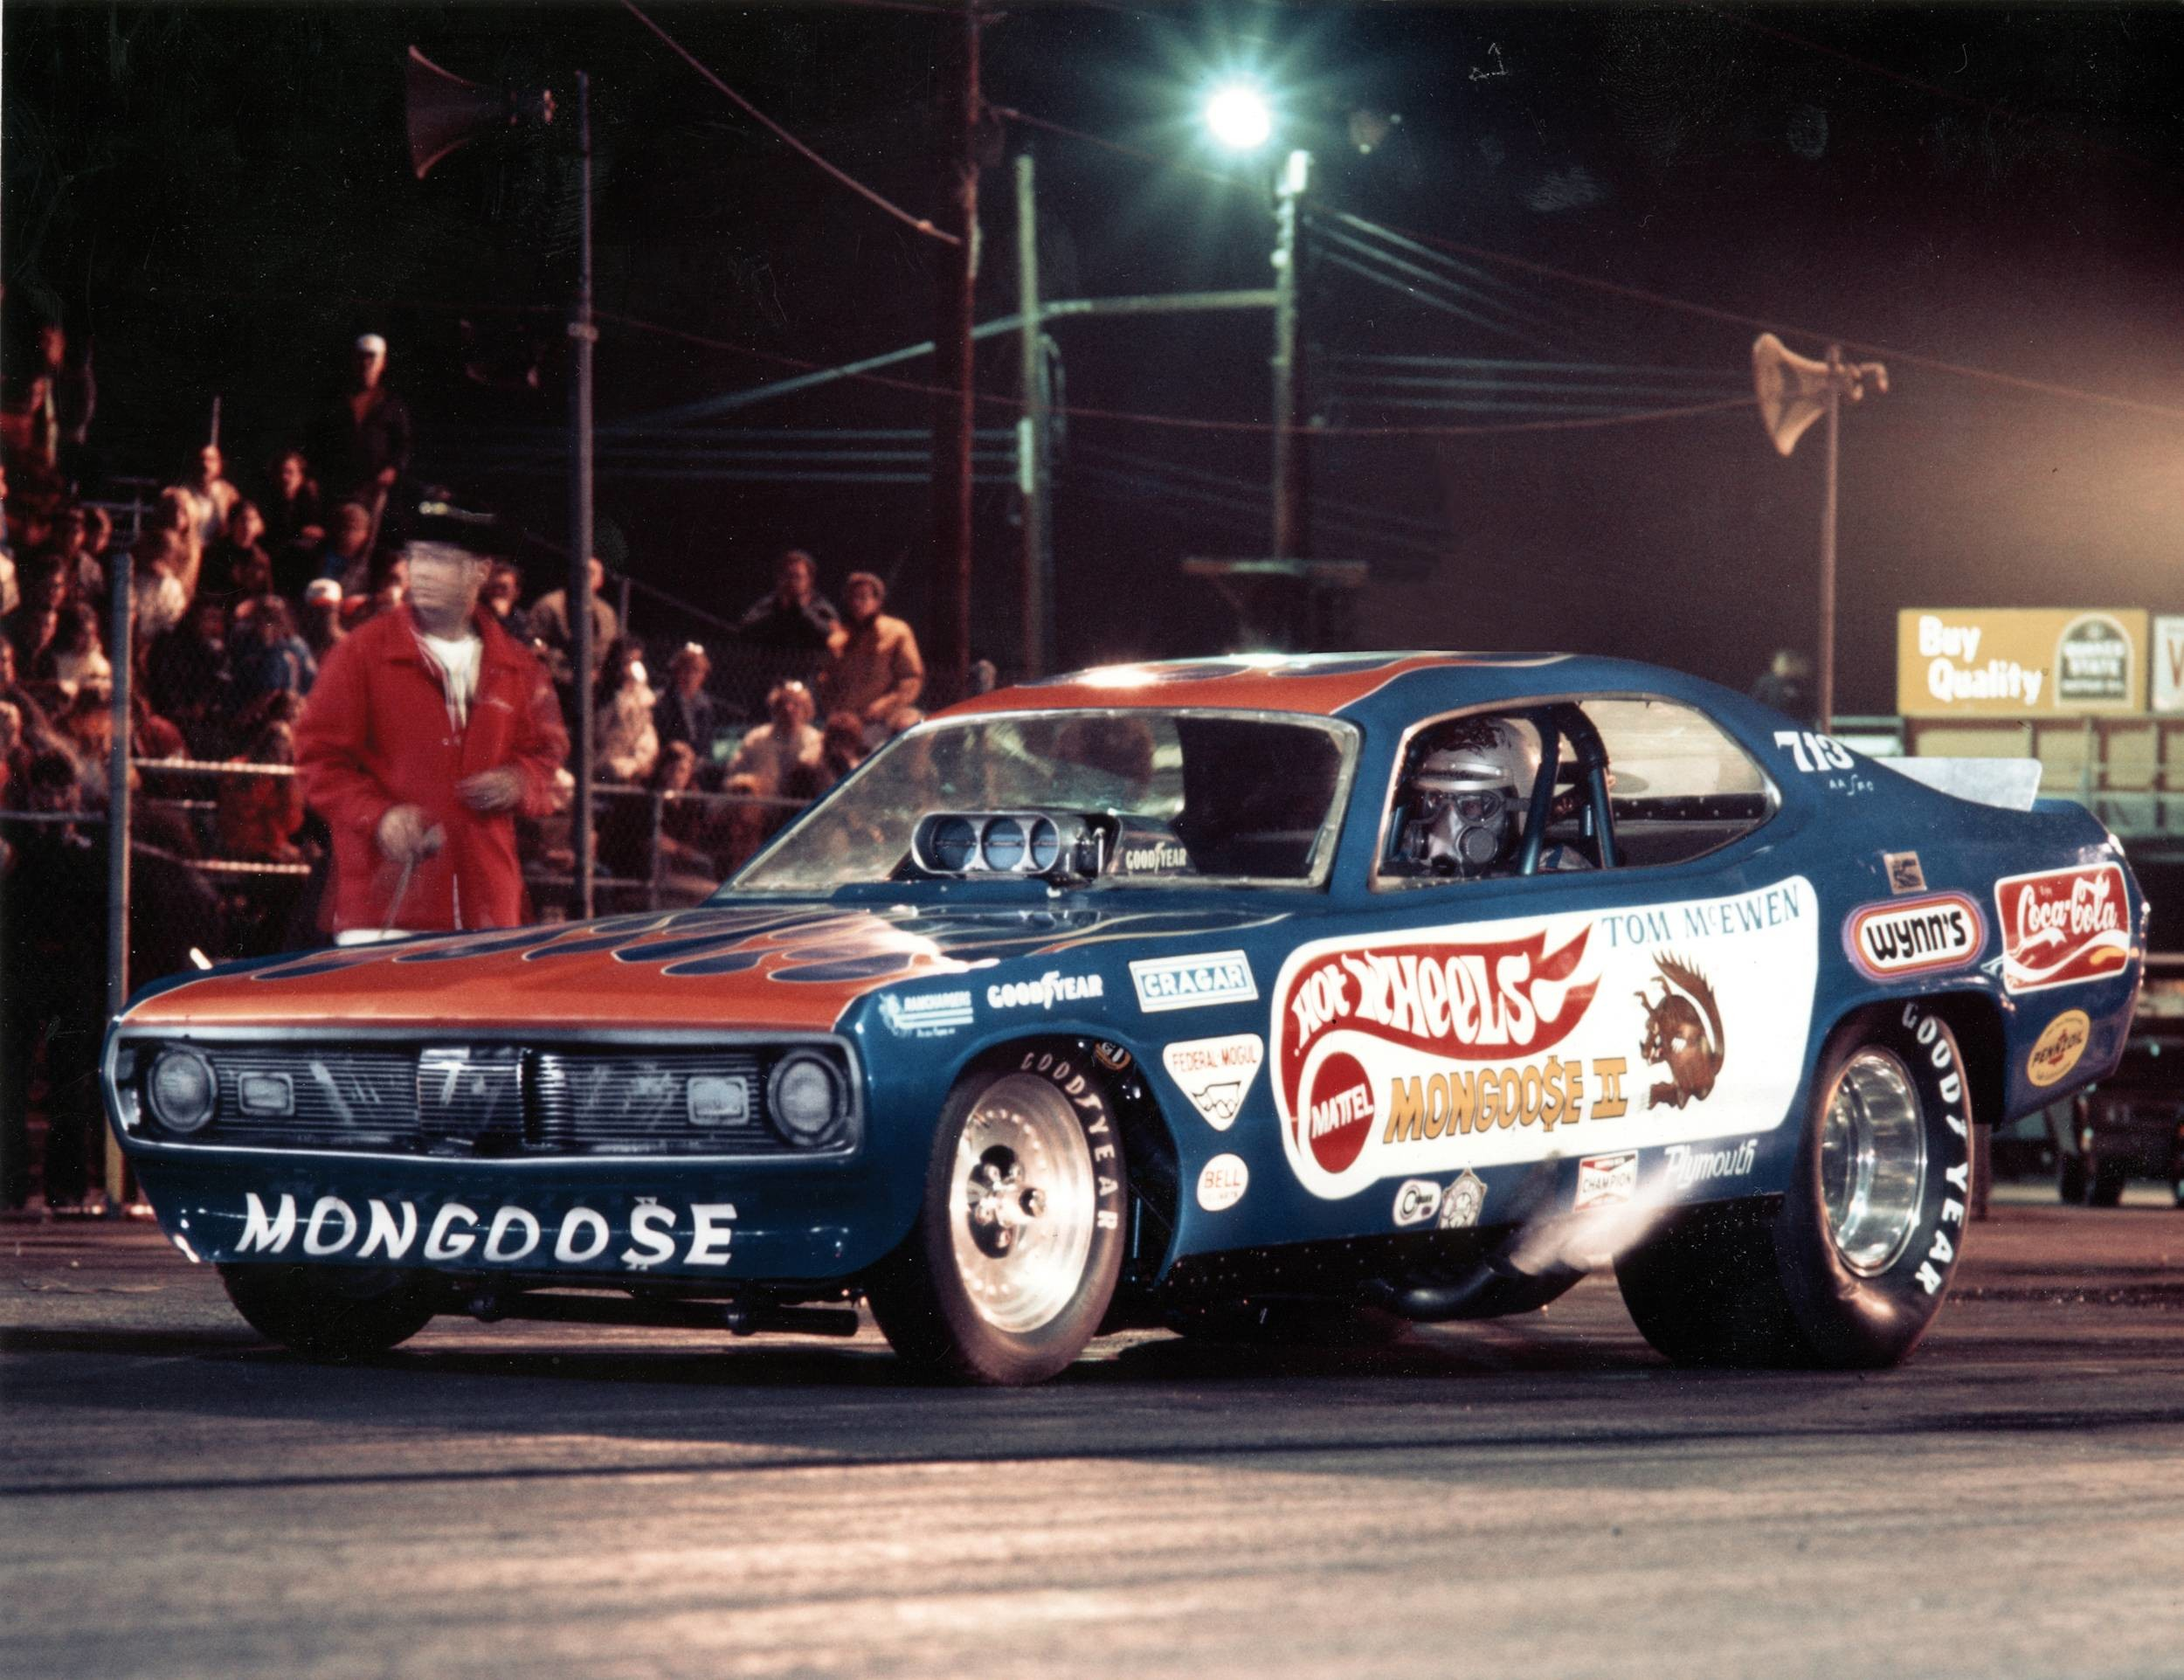 Res: 2500x1923, Funny Cars Night Racing Desktop Wallpaper - wallpaper source